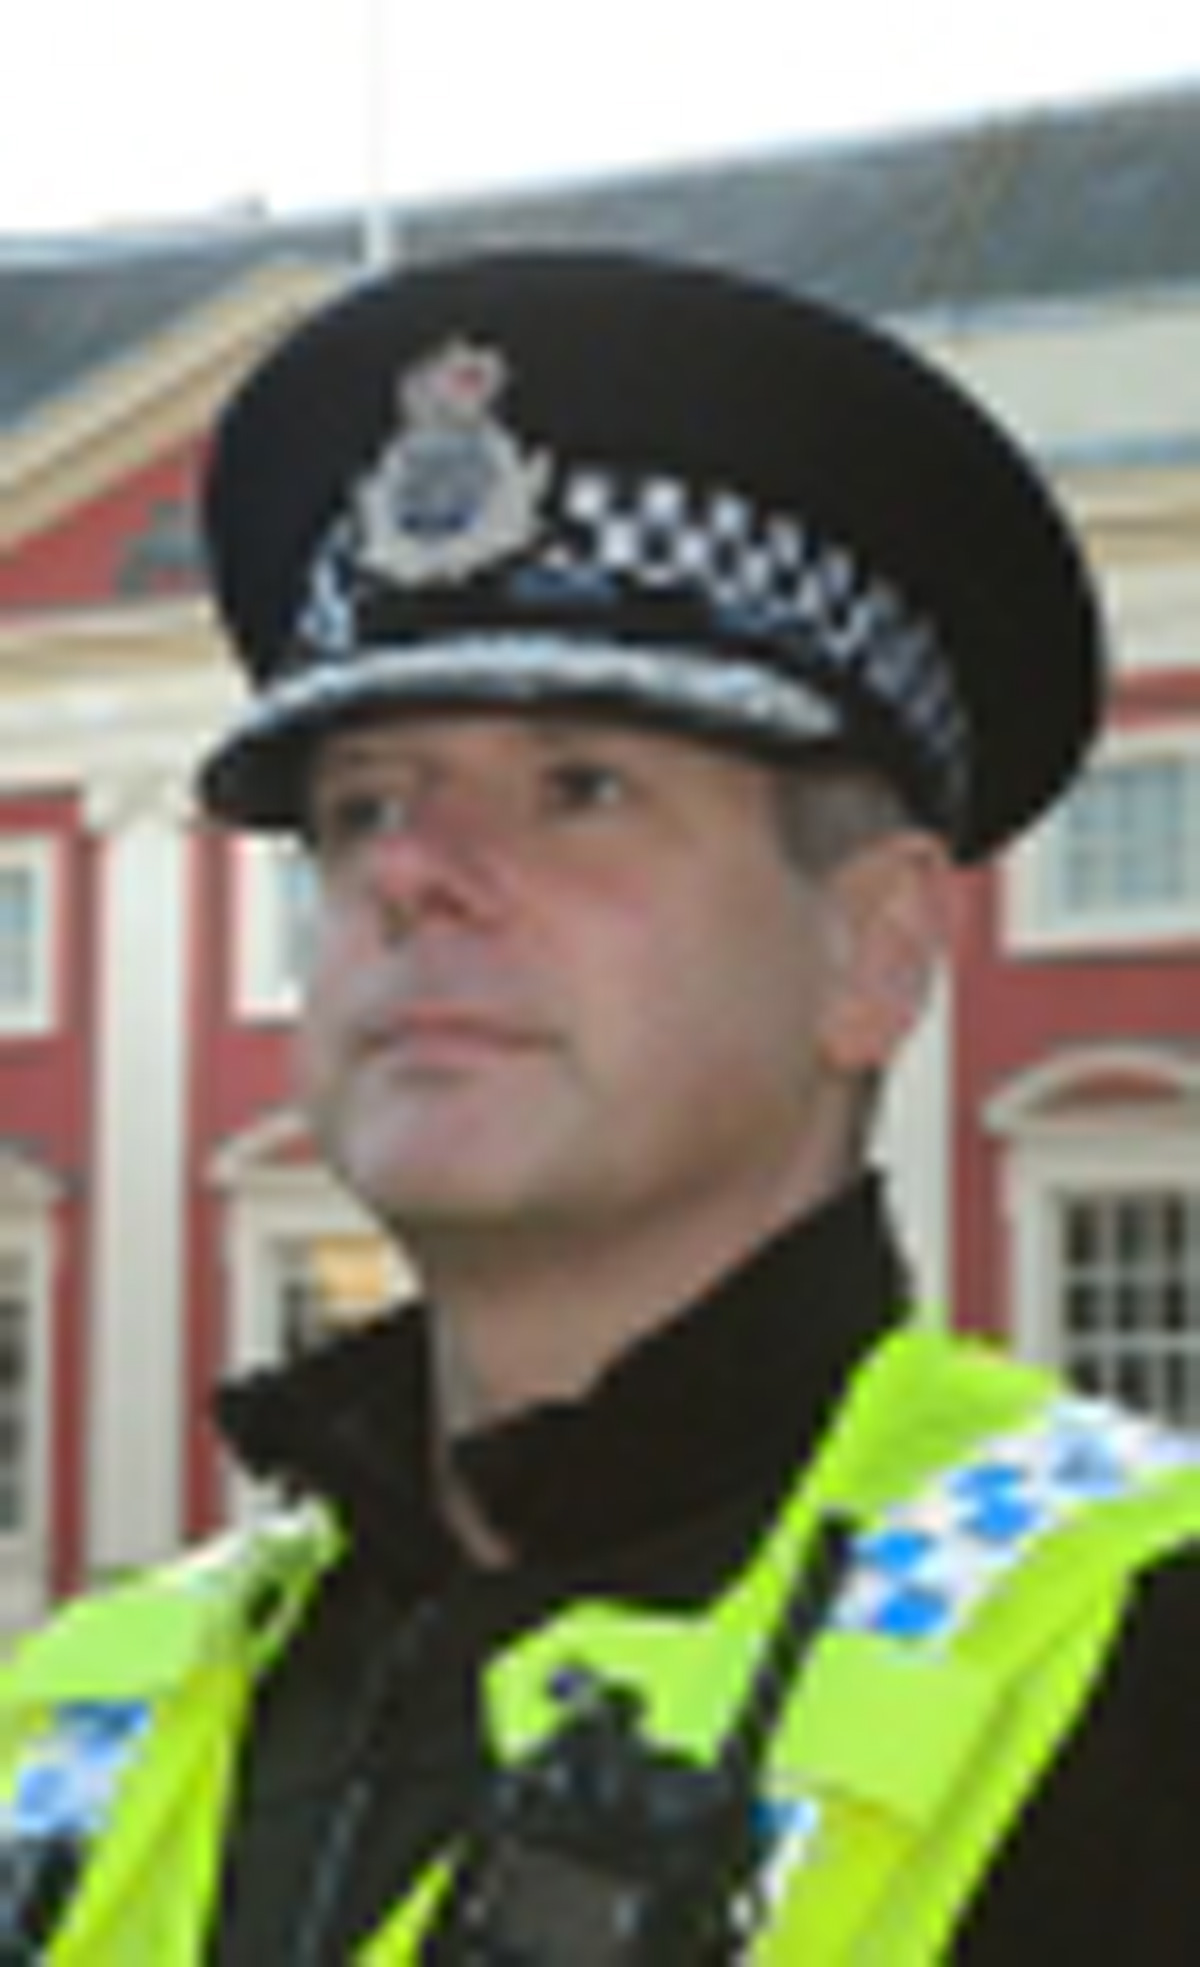 Temporary Assistant Chief Constable Ken McIntosh